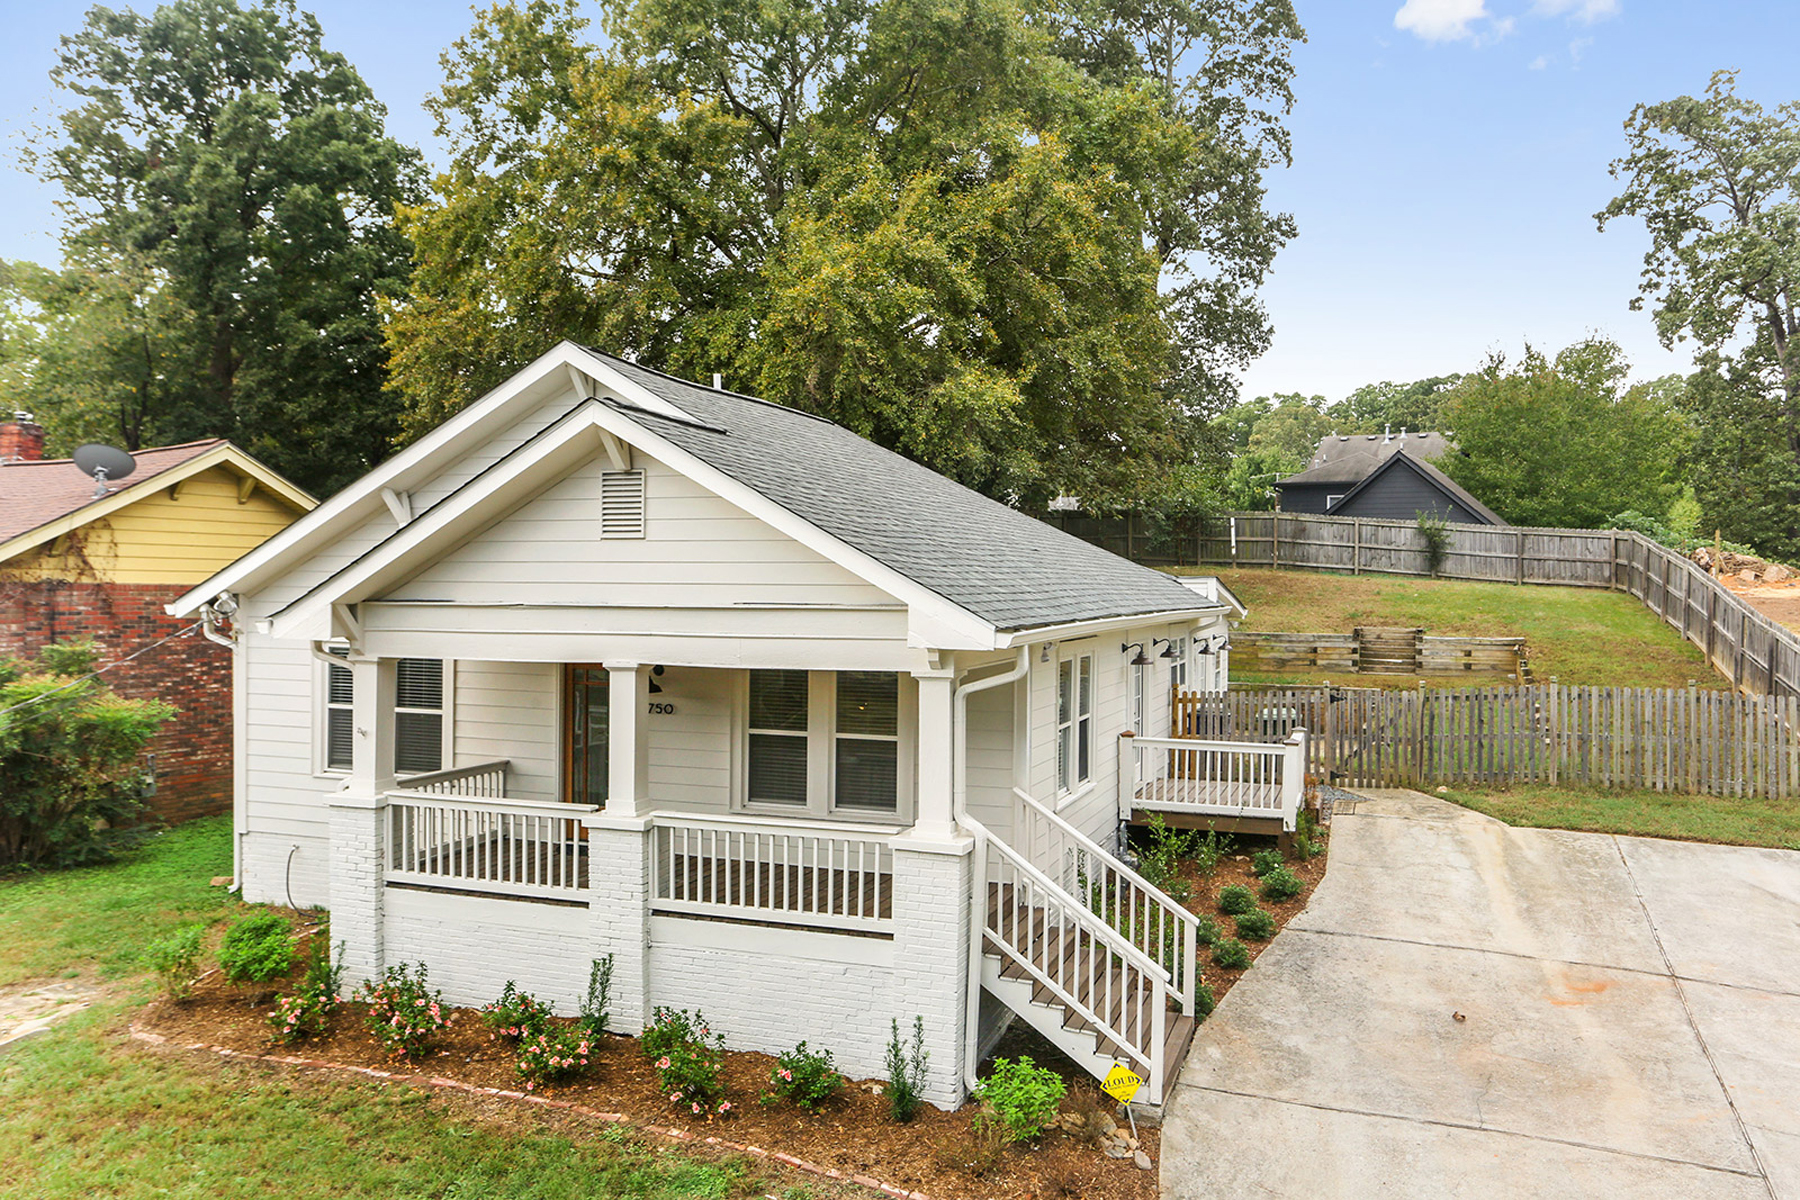 Single Family Home for Sale at Charming Westside Bungalow 1750 Marietta Road NW Atlanta, Georgia 30318 United States